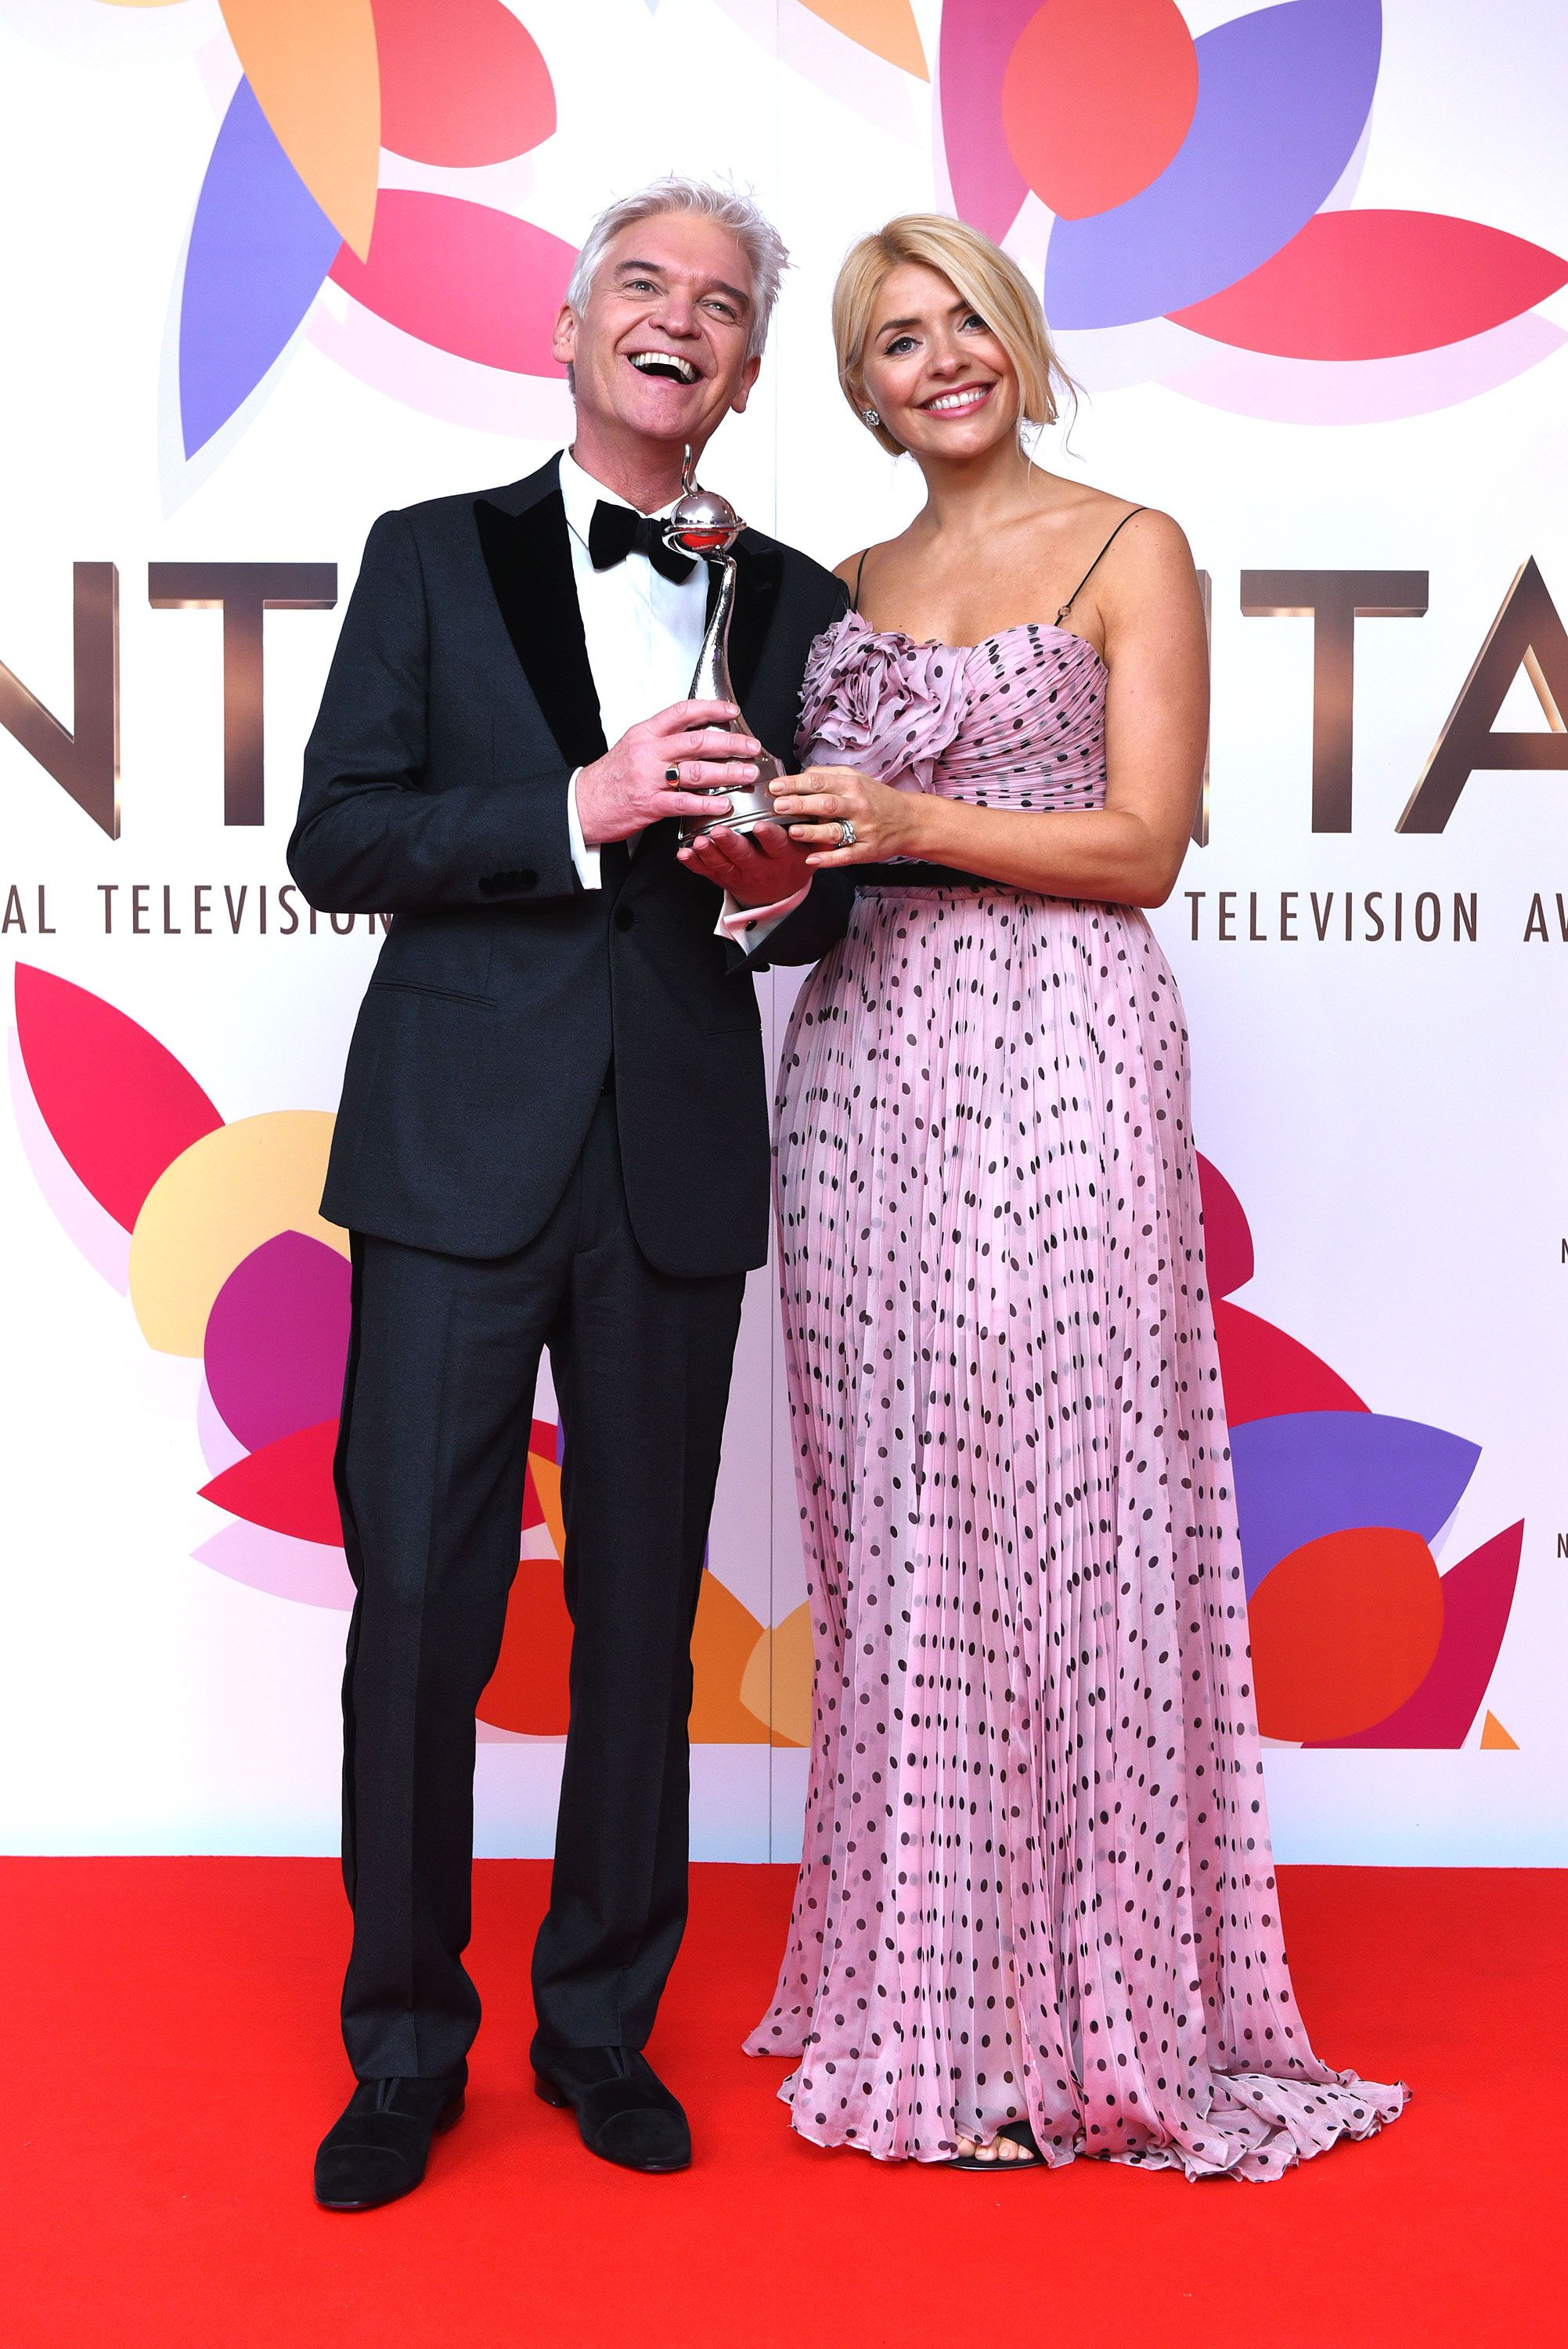 ITV denies This Morning feud between Phillip Schofield and Holly Willoughby